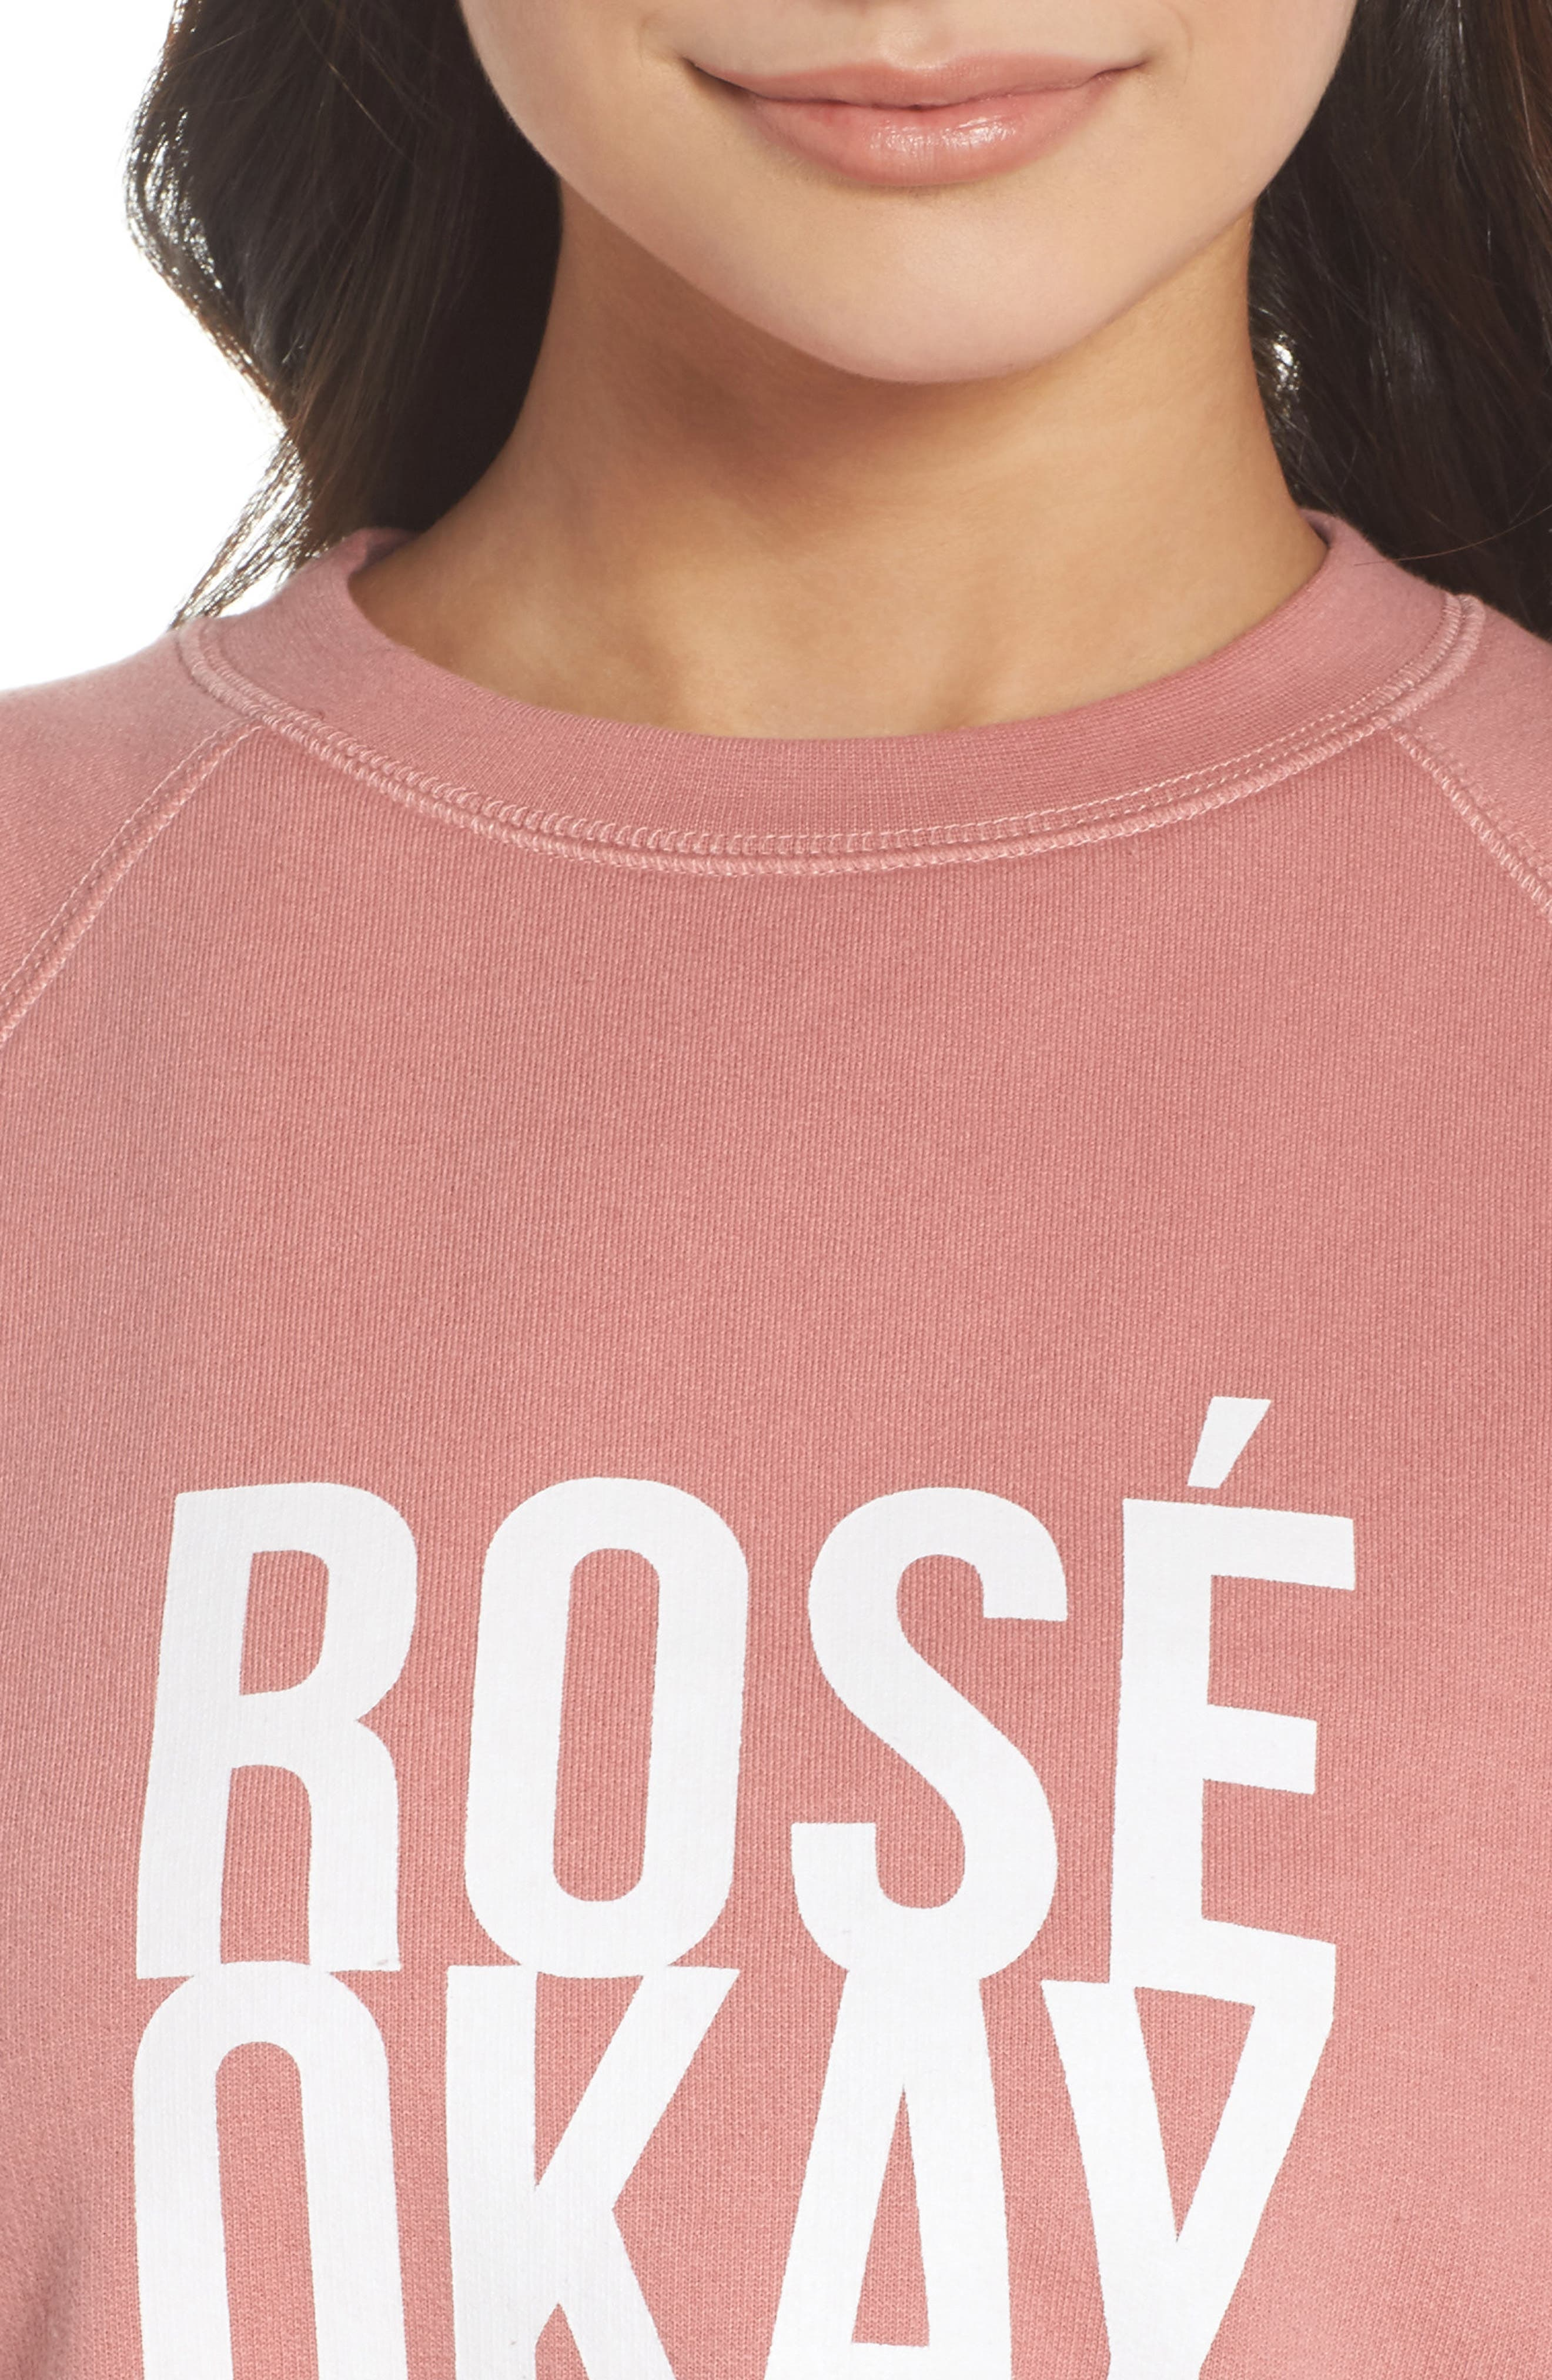 Rosé Okay Sweatshirt,                             Alternate thumbnail 5, color,                             Dusty Rose